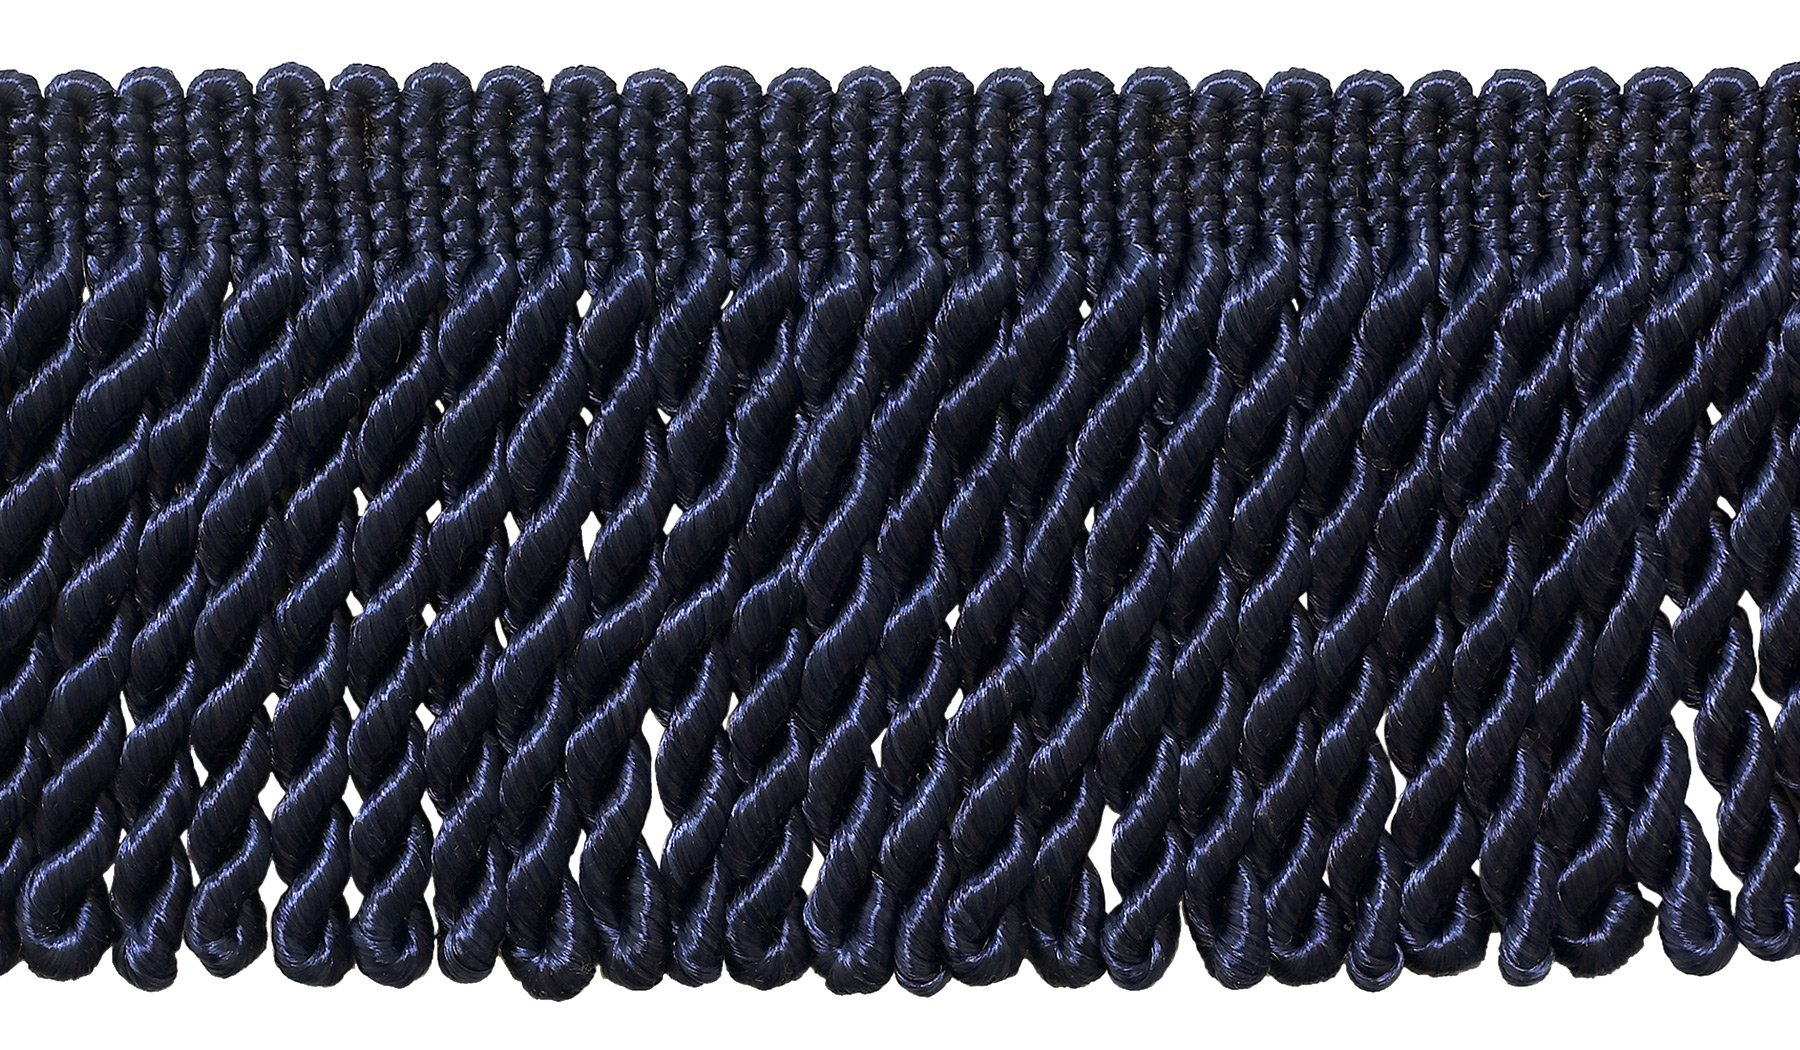 DÉCOPRO 7 Yard Value Pack - 3 Inch Long Dark Navy Blue Bullion Fringe Trim, Style# BFS3 Color: J3 (21 Ft / 6.4M) by DÉCOPRO